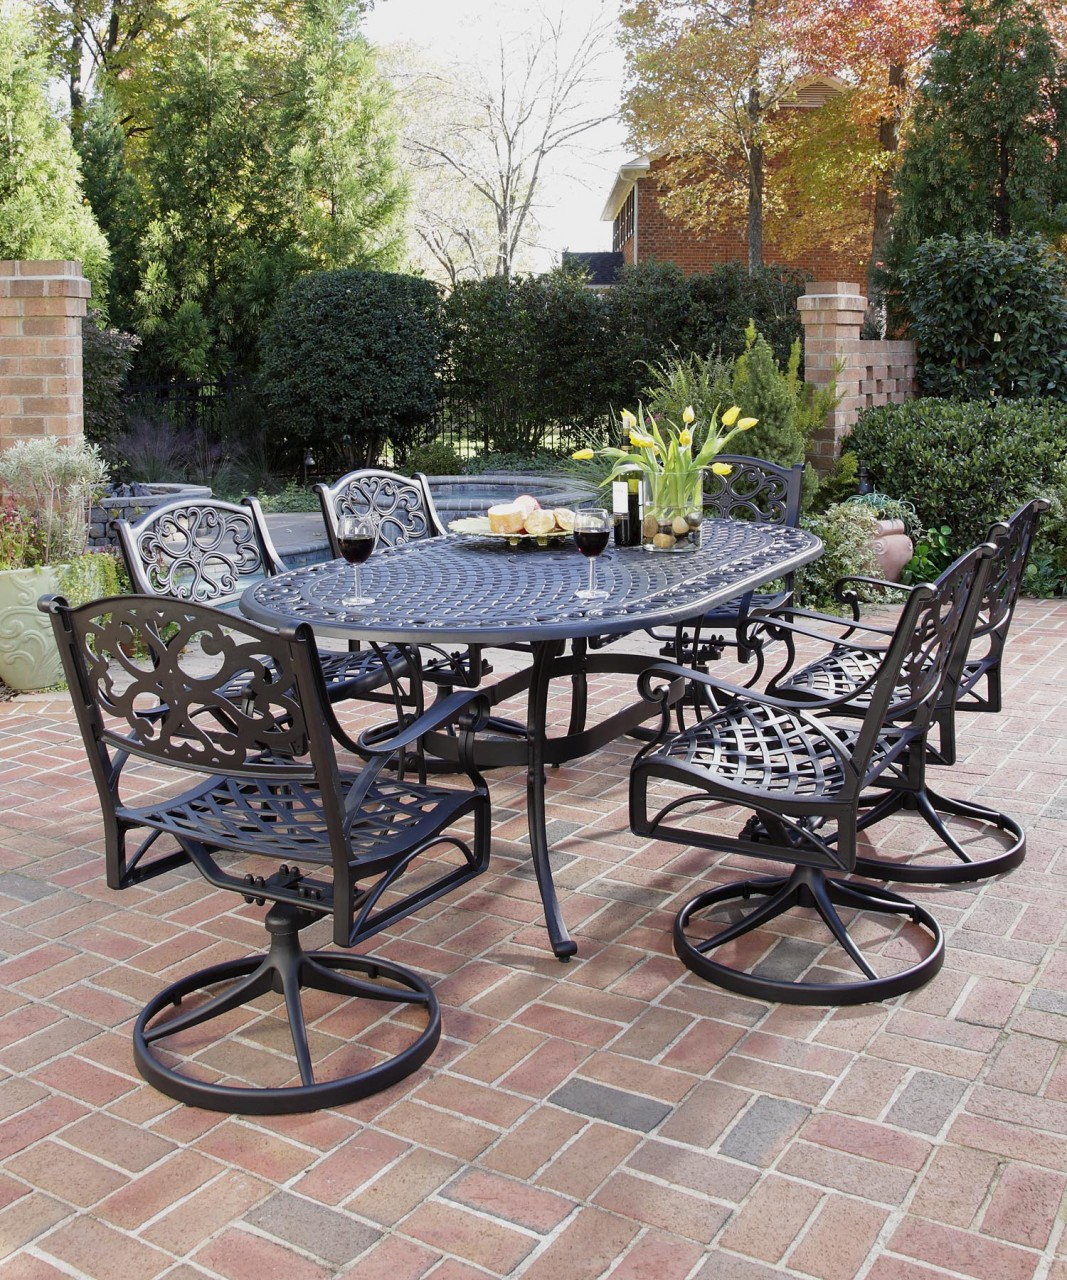 Image of: Cast Iron Patio Furniture Style